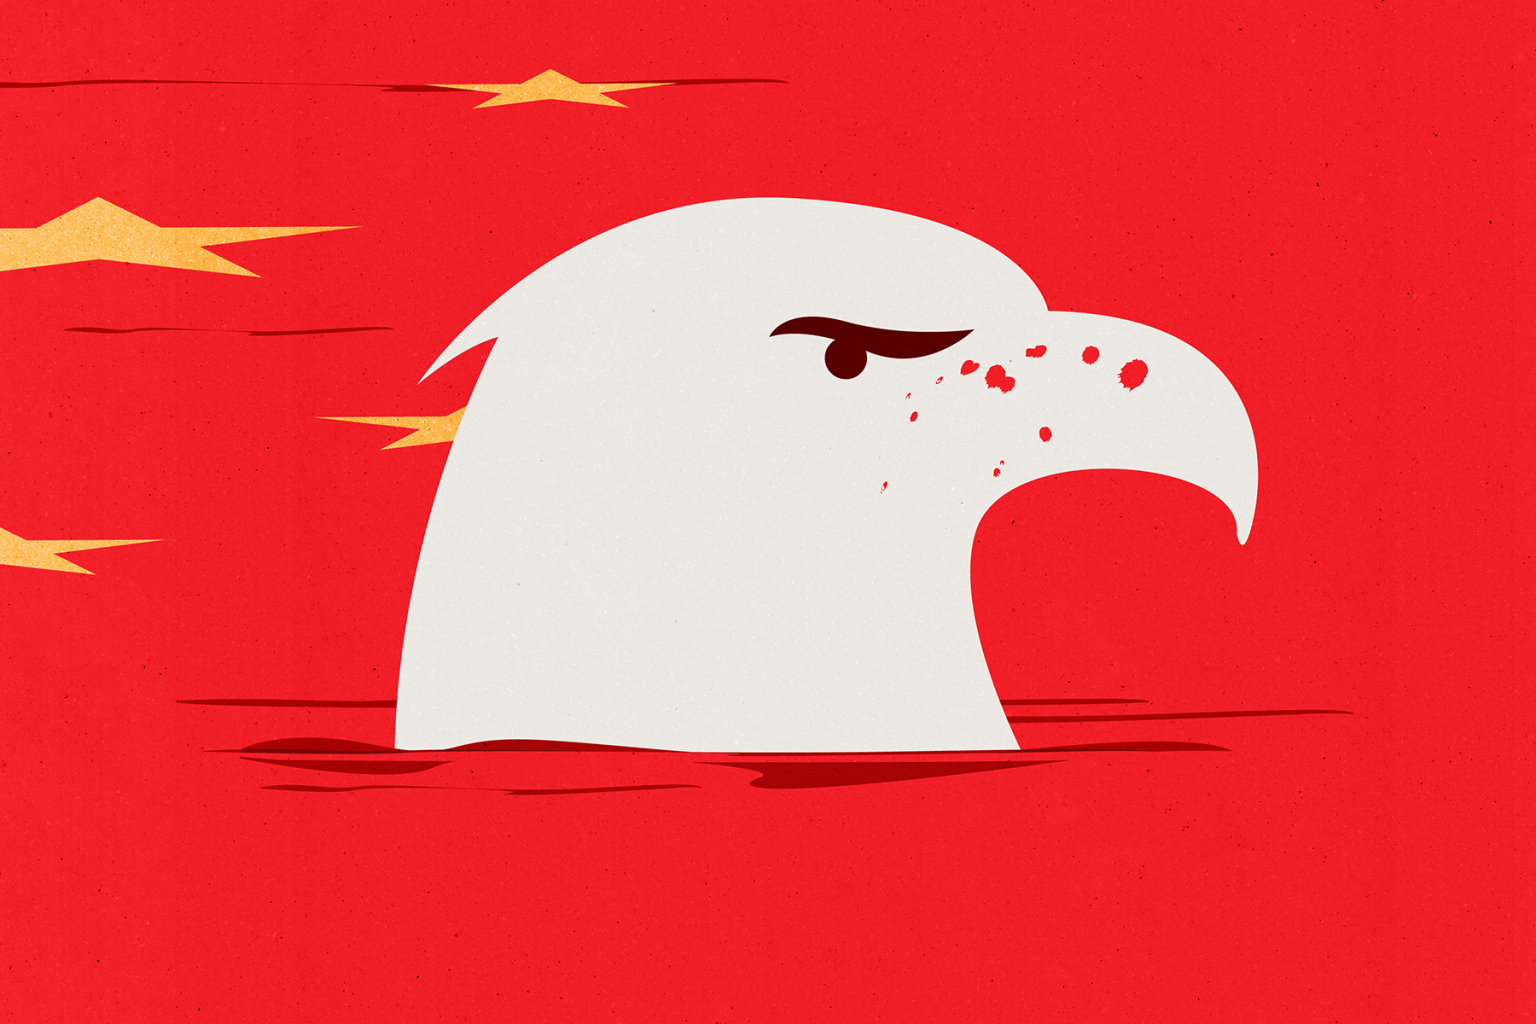 eagle-china-new-size_rougher-sm.jpg